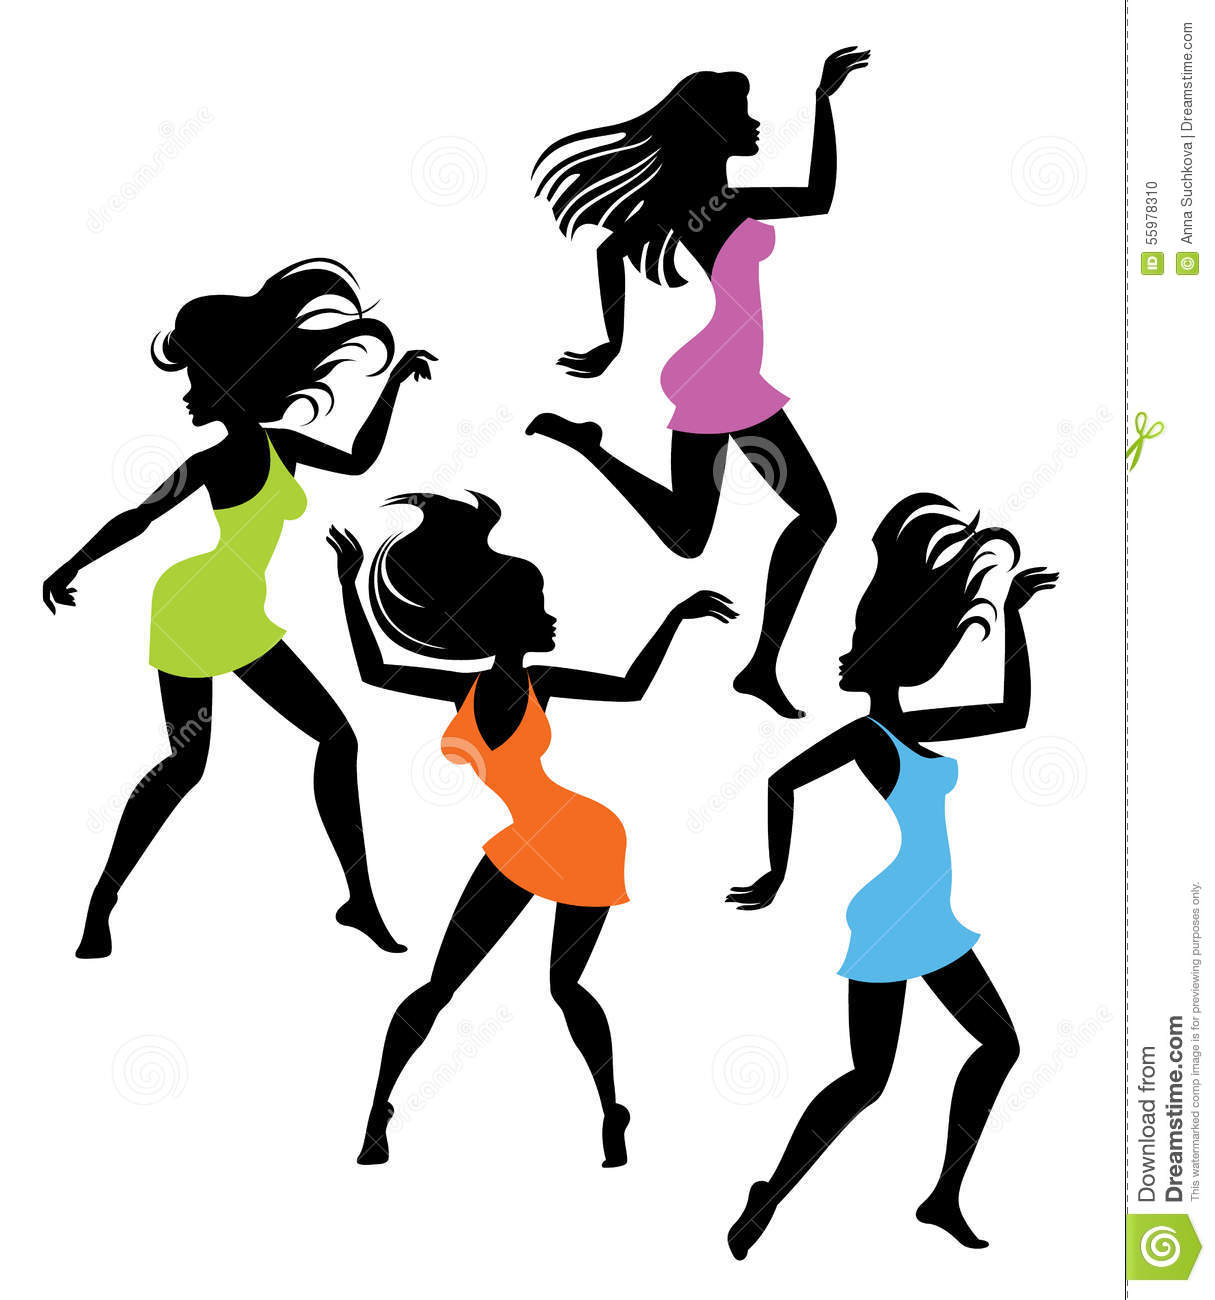 Dancing Girl Silhouettes Stock Vector - Image: 55978310